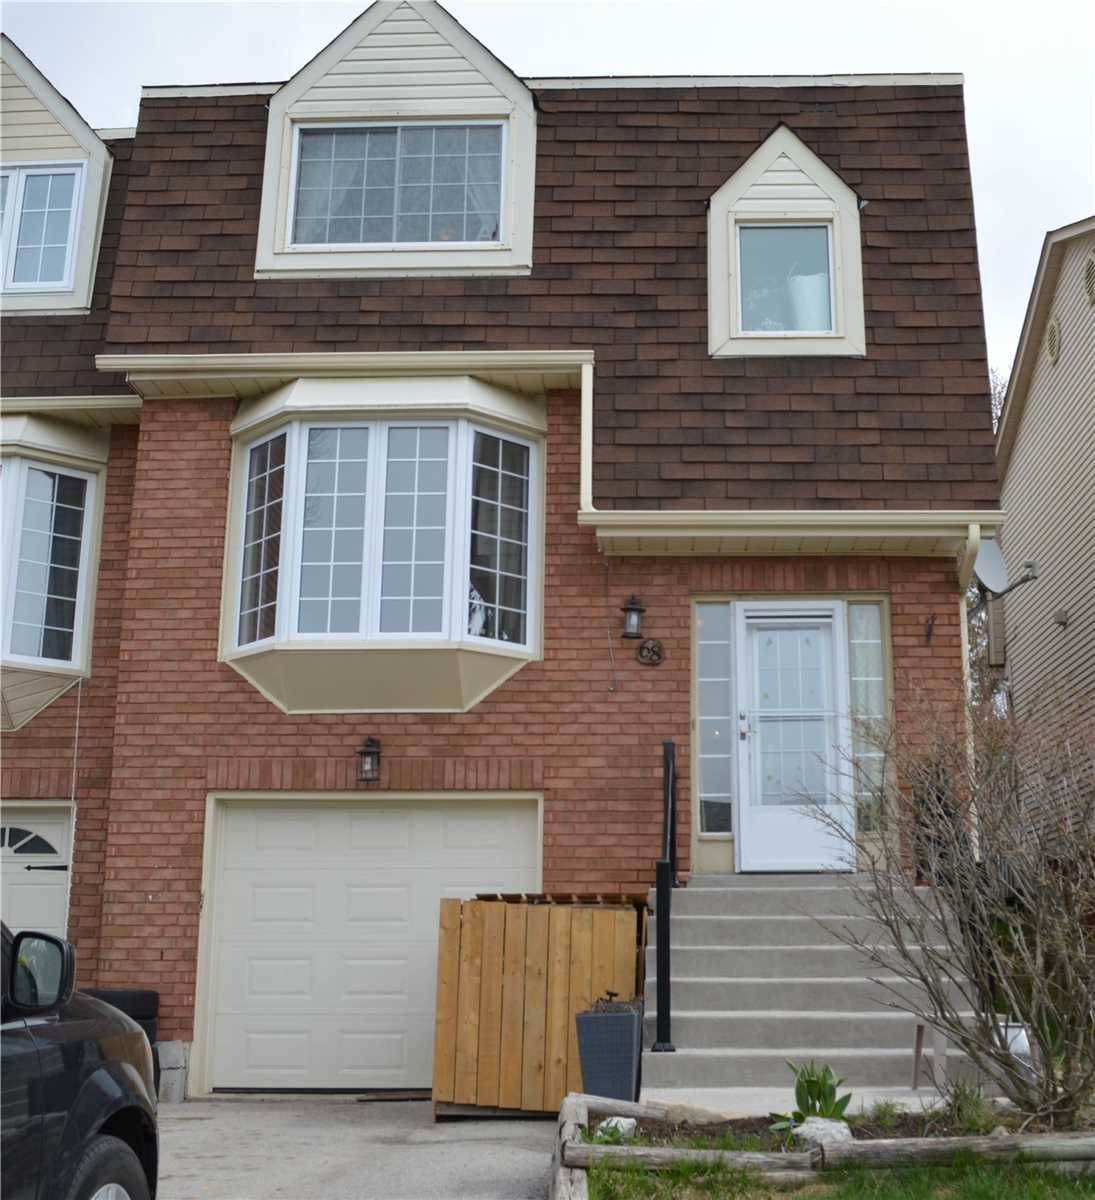 Main Photo: 68 Lakeview Court: Orangeville House (2-Storey) for sale : MLS®# W5196626